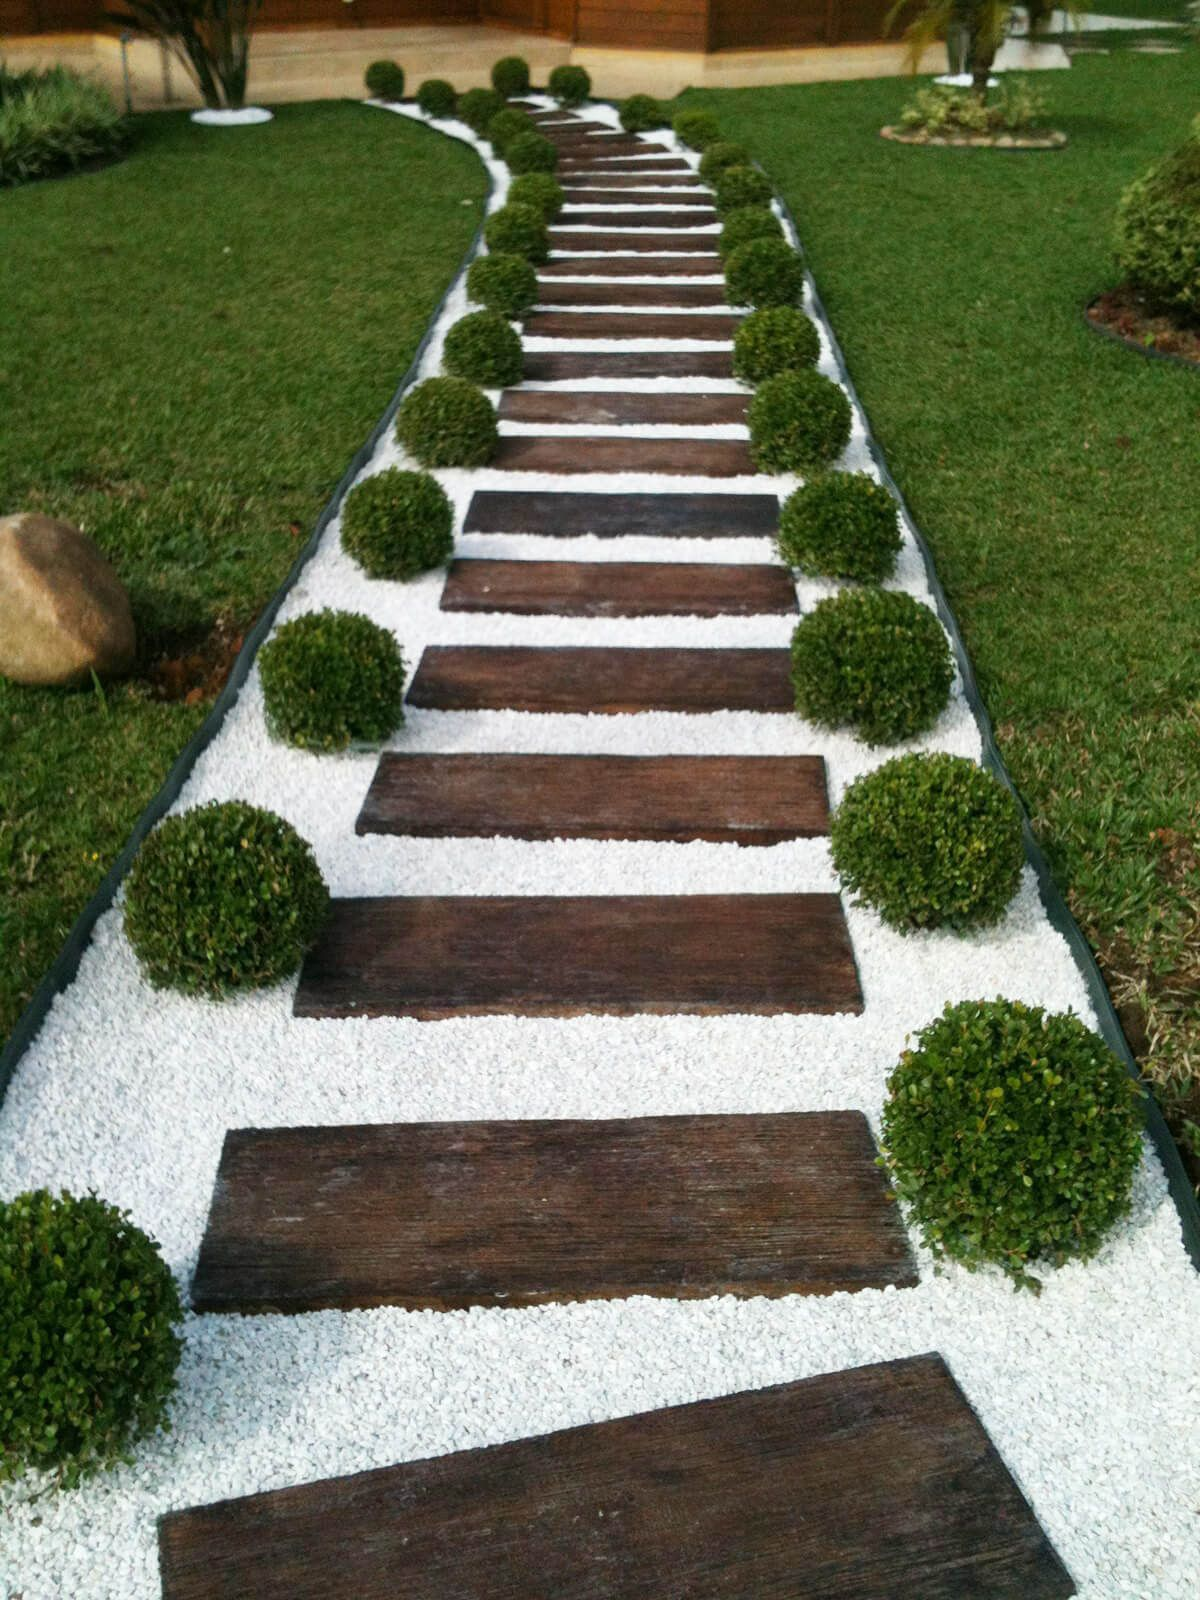 25 Fabulous Garden Path and Walkway Ideas | Wood ladder, Stone and Woods